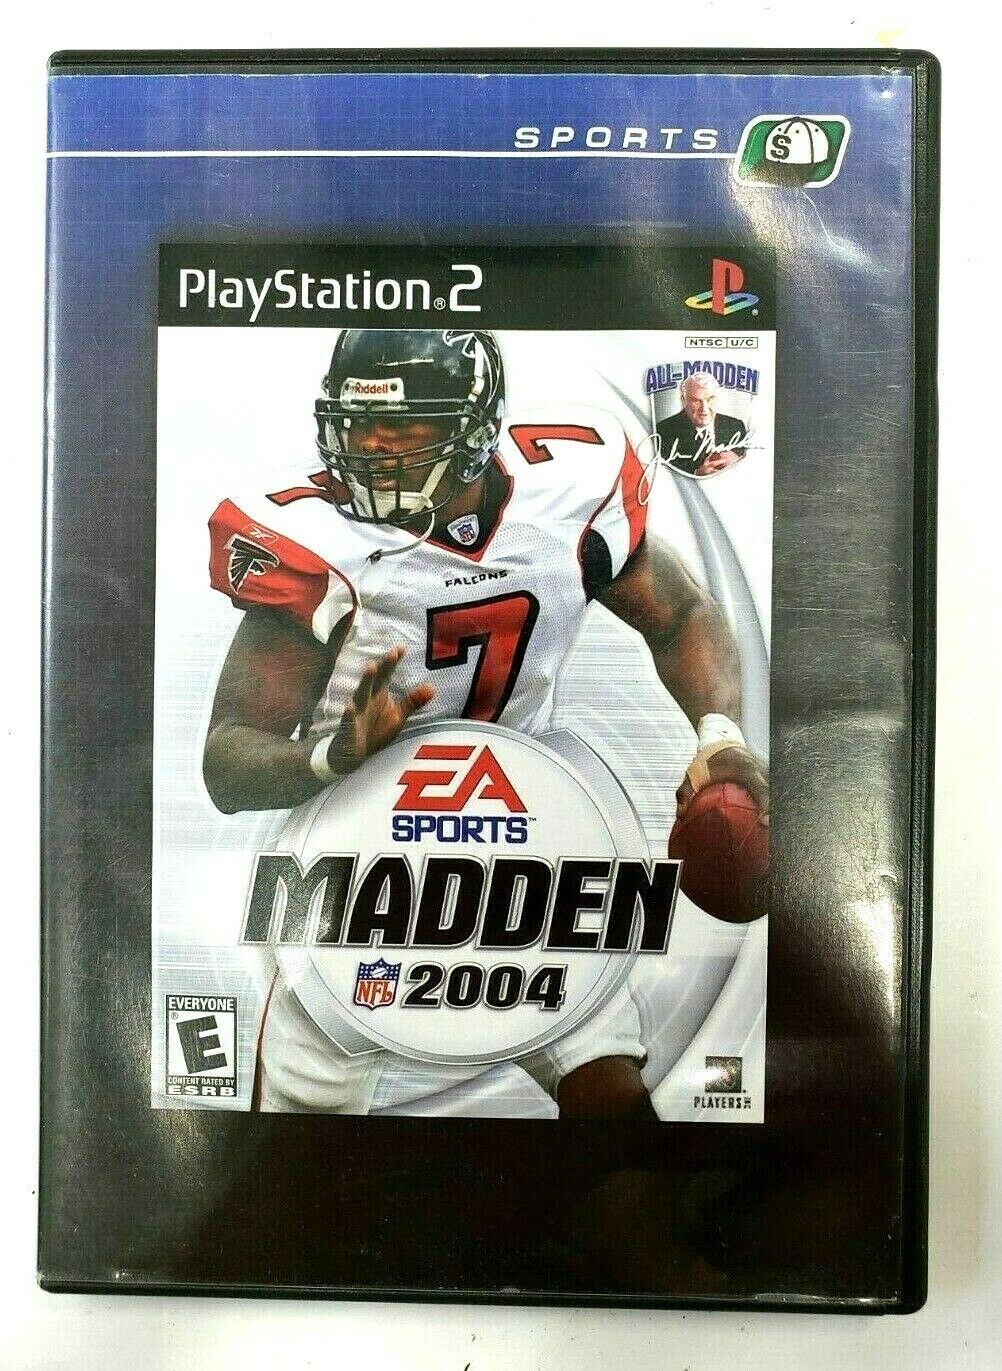 Madden 2004,Football PS2 Game,PlayStation 2 Game